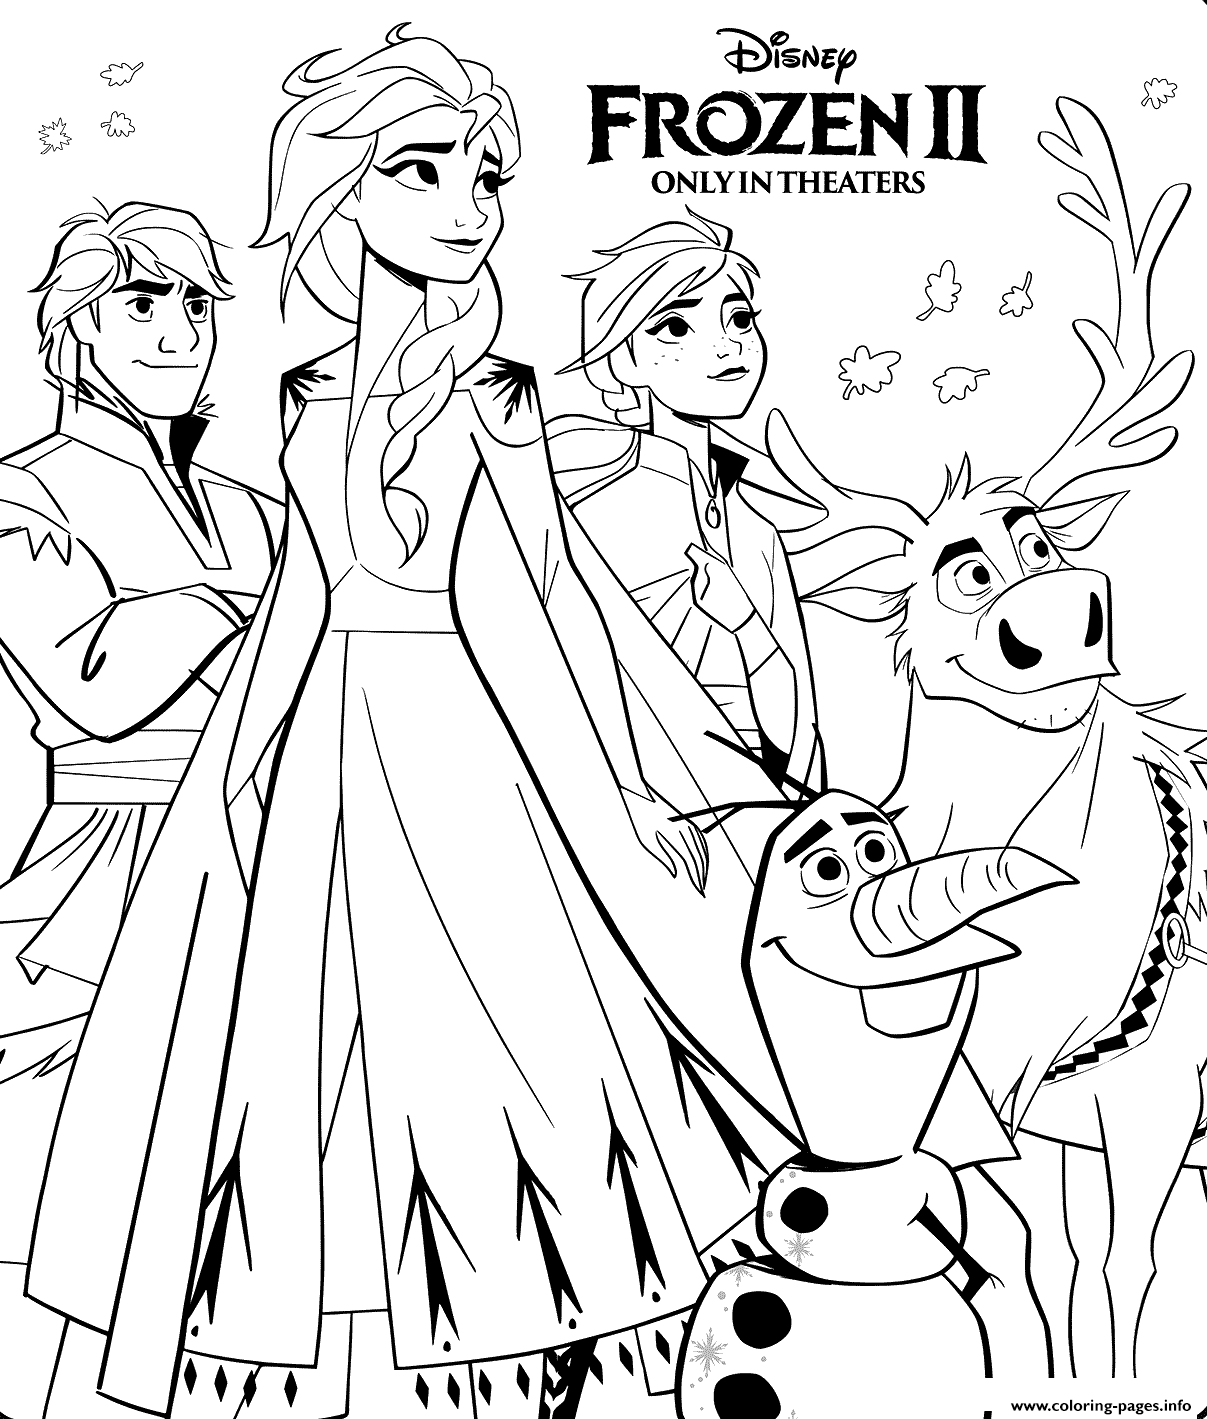 coloring pages to print frozen frozen 2 coloring pages coloring home coloring pages to print frozen